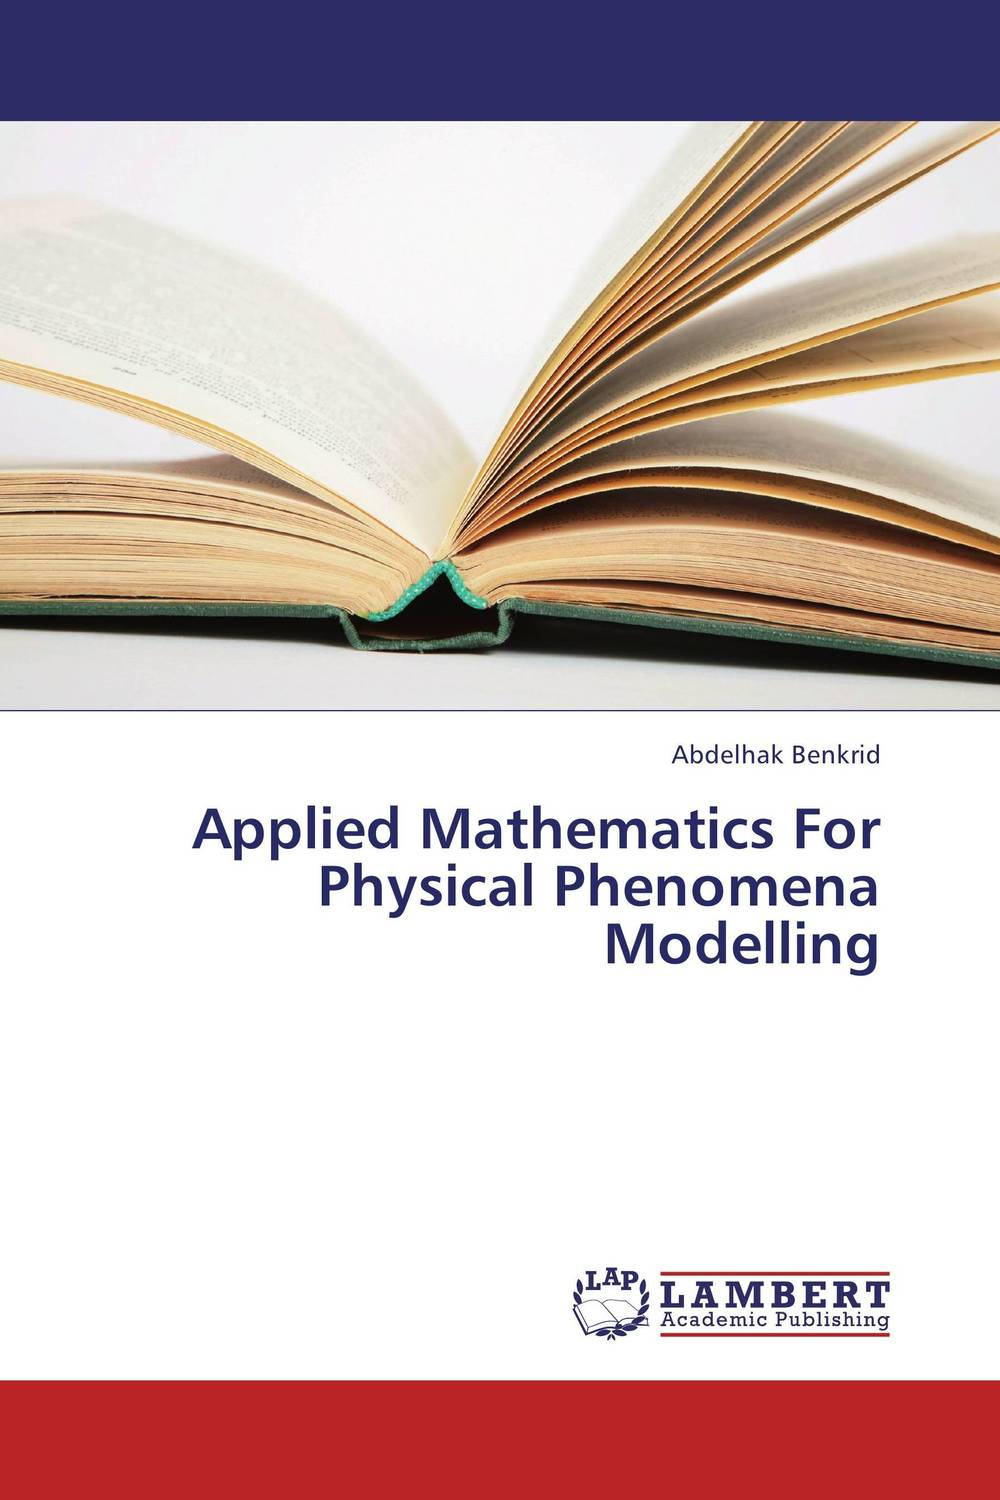 Applied Mathematics For Physical Phenomena Modelling practical manual on applied mathematics